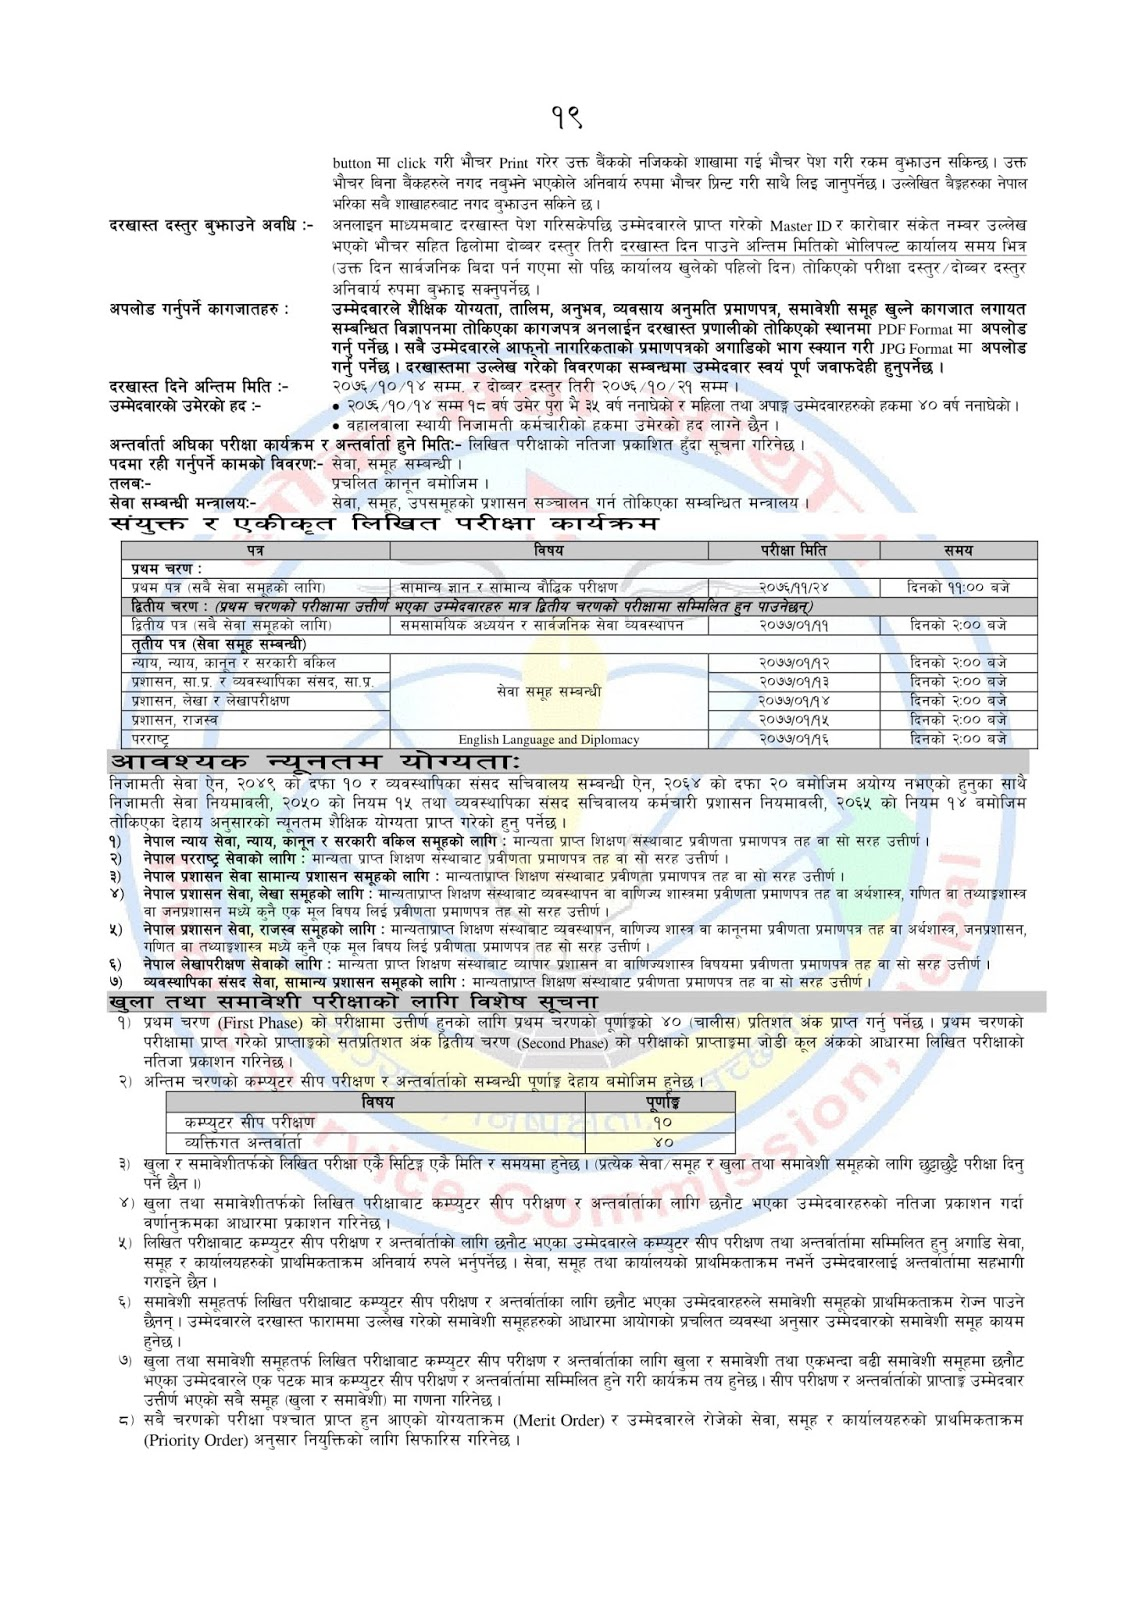 Nayab Subba Vacancy For More Than 550 Post Around The Nepal 2076